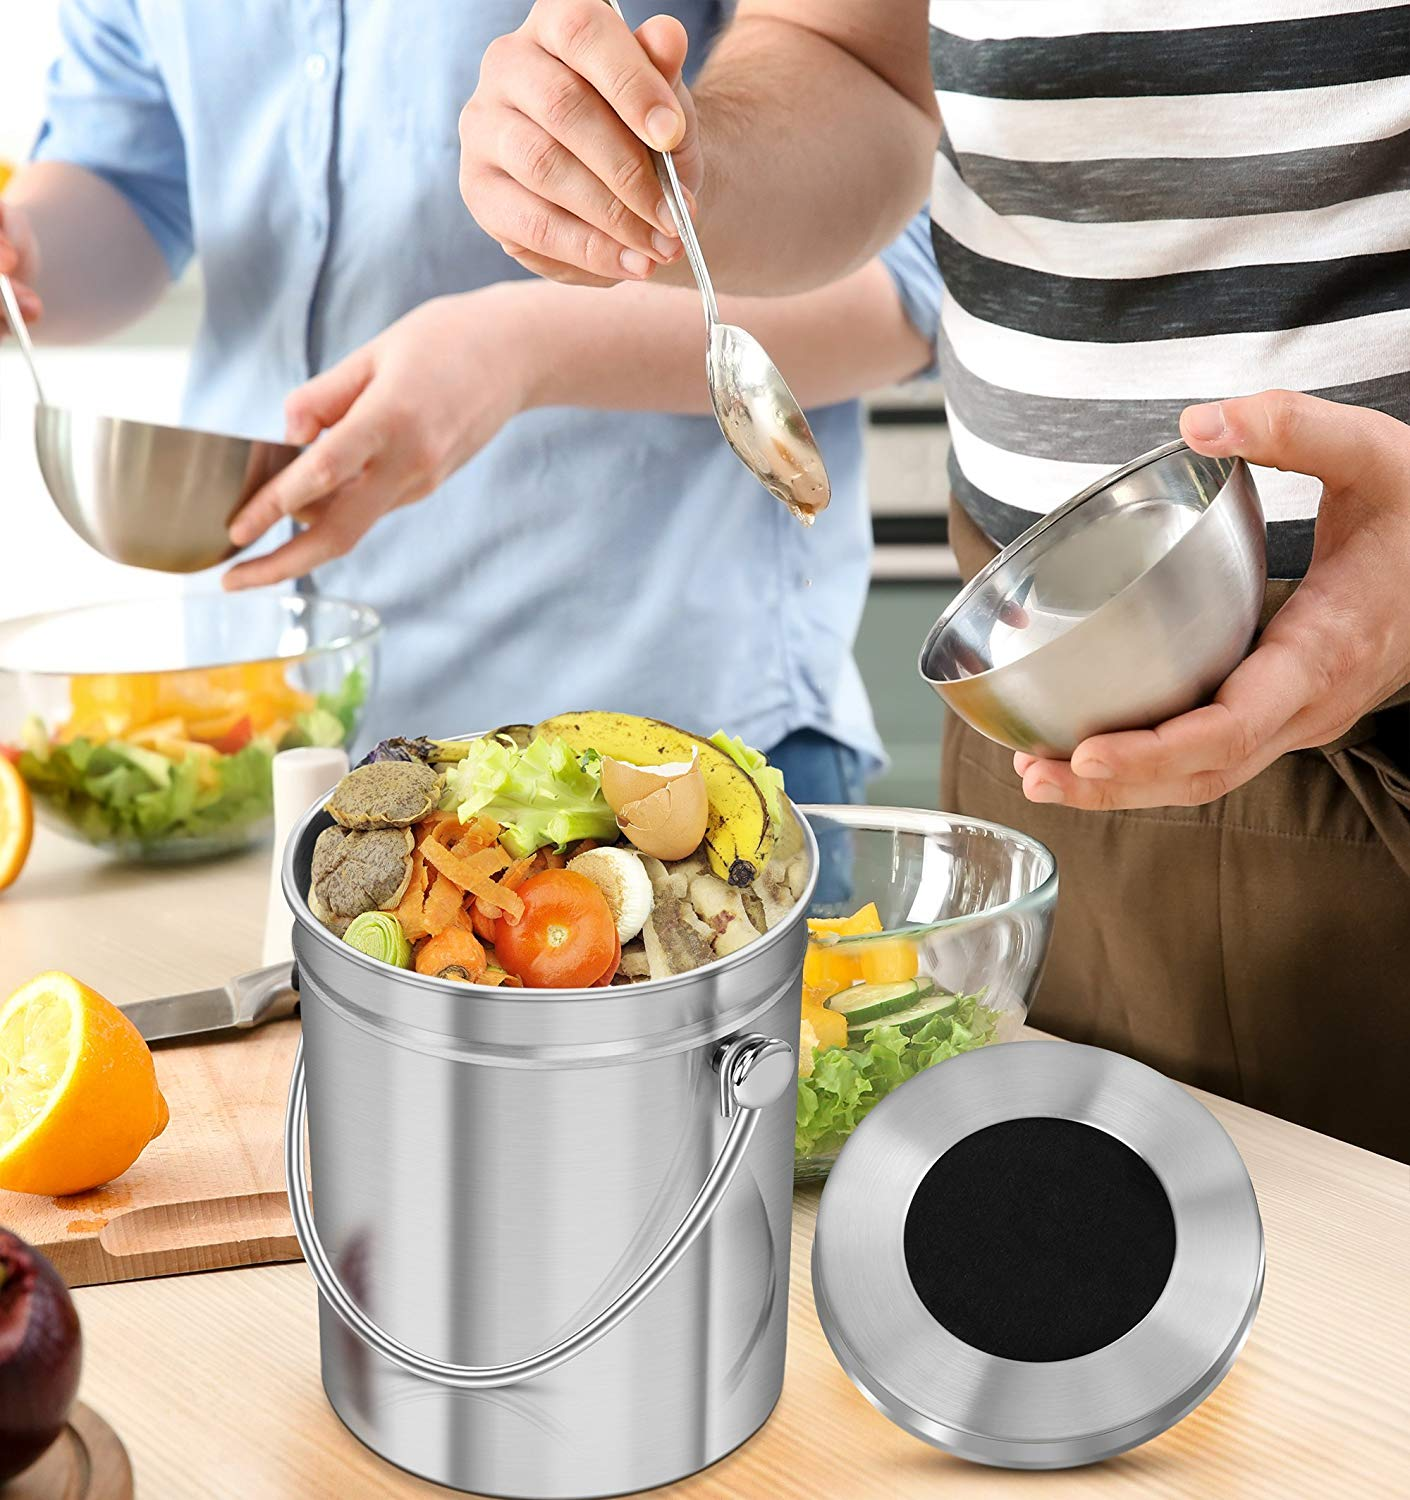 1.3 Gallon Stainless Steel Indoor Kitchen Countertop Compost Bin for Kitchen Food Waste with Carrying Handle